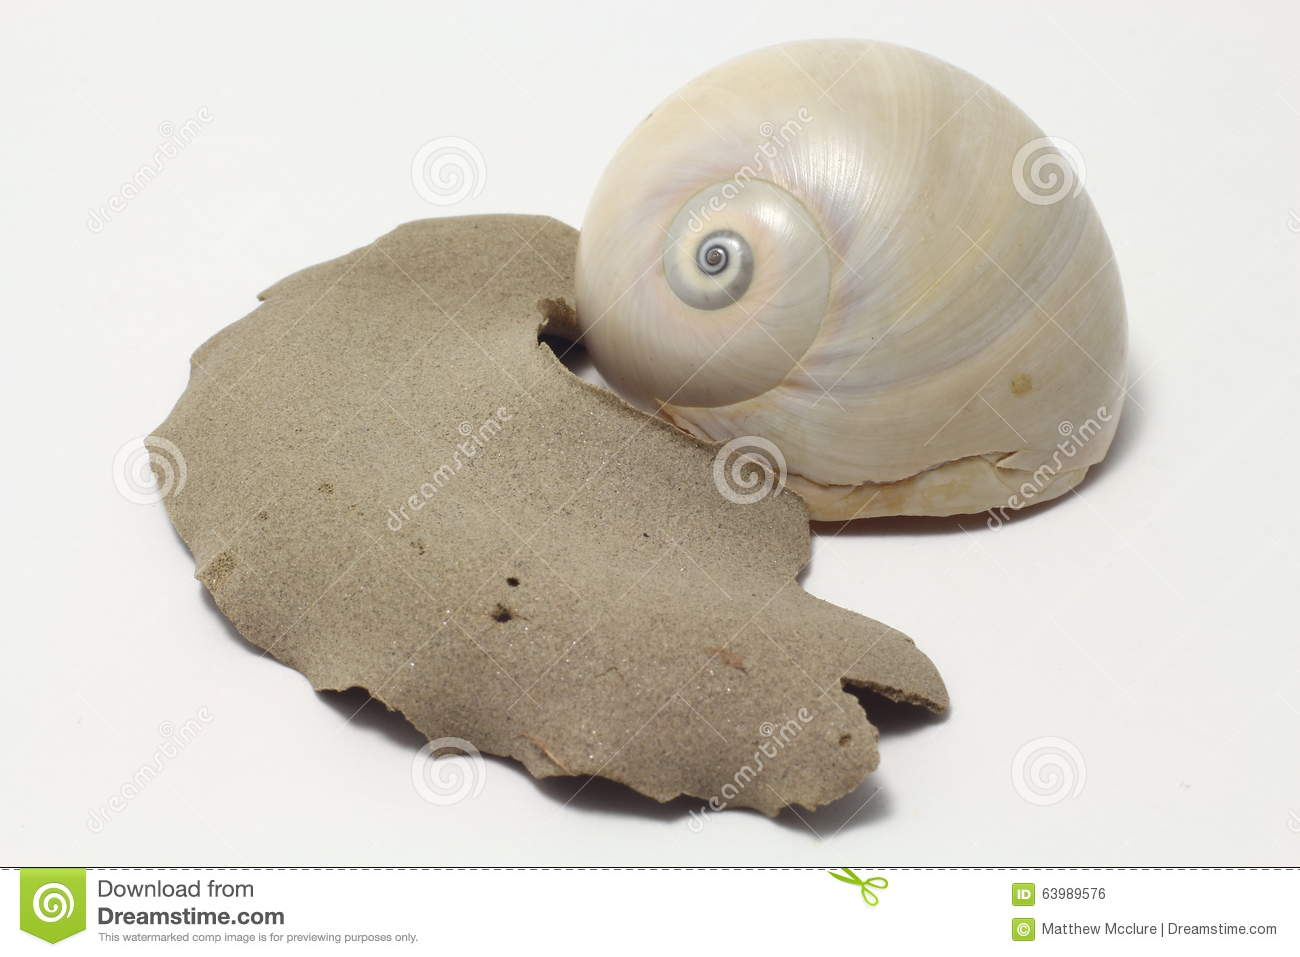 hight resolution of moon snail portrait royalty free stock image